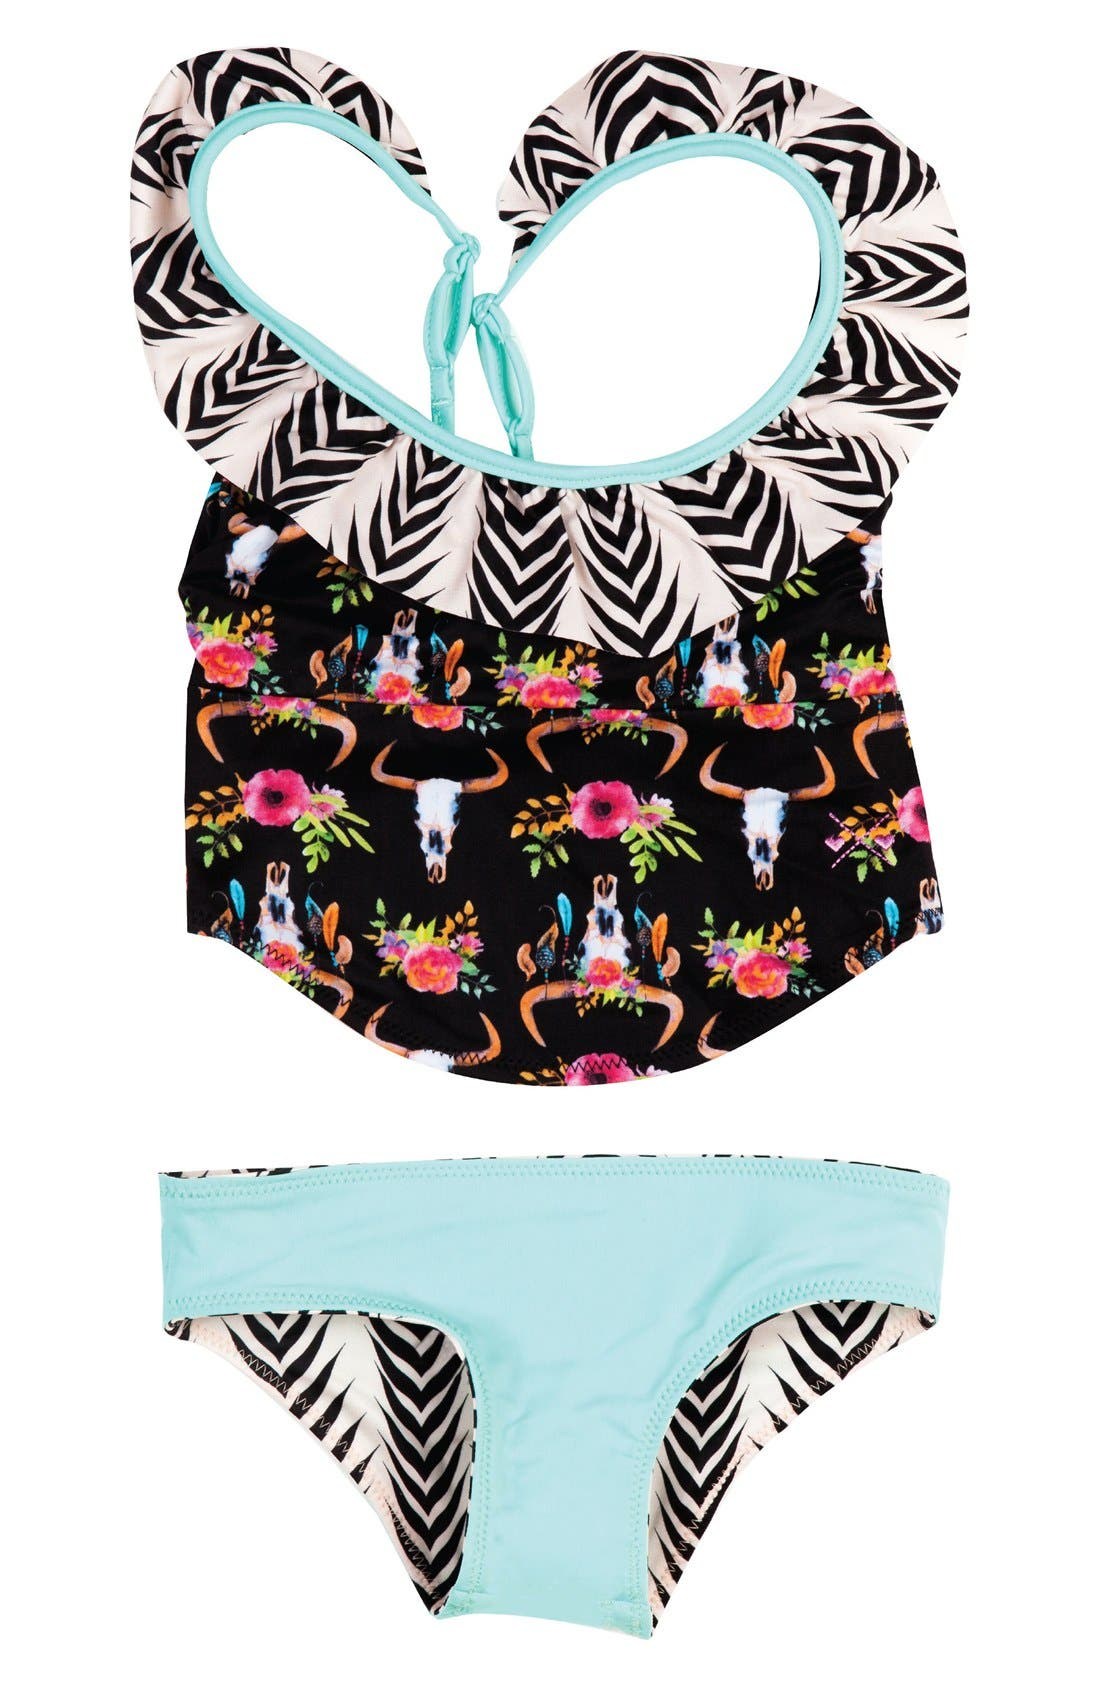 Alternate Image 1 Selected - BOWIE X JAMES Dreamcatcher Two-Piece Tankini Swimsuit (Toddler Girls, Little Girls & Big Girls)